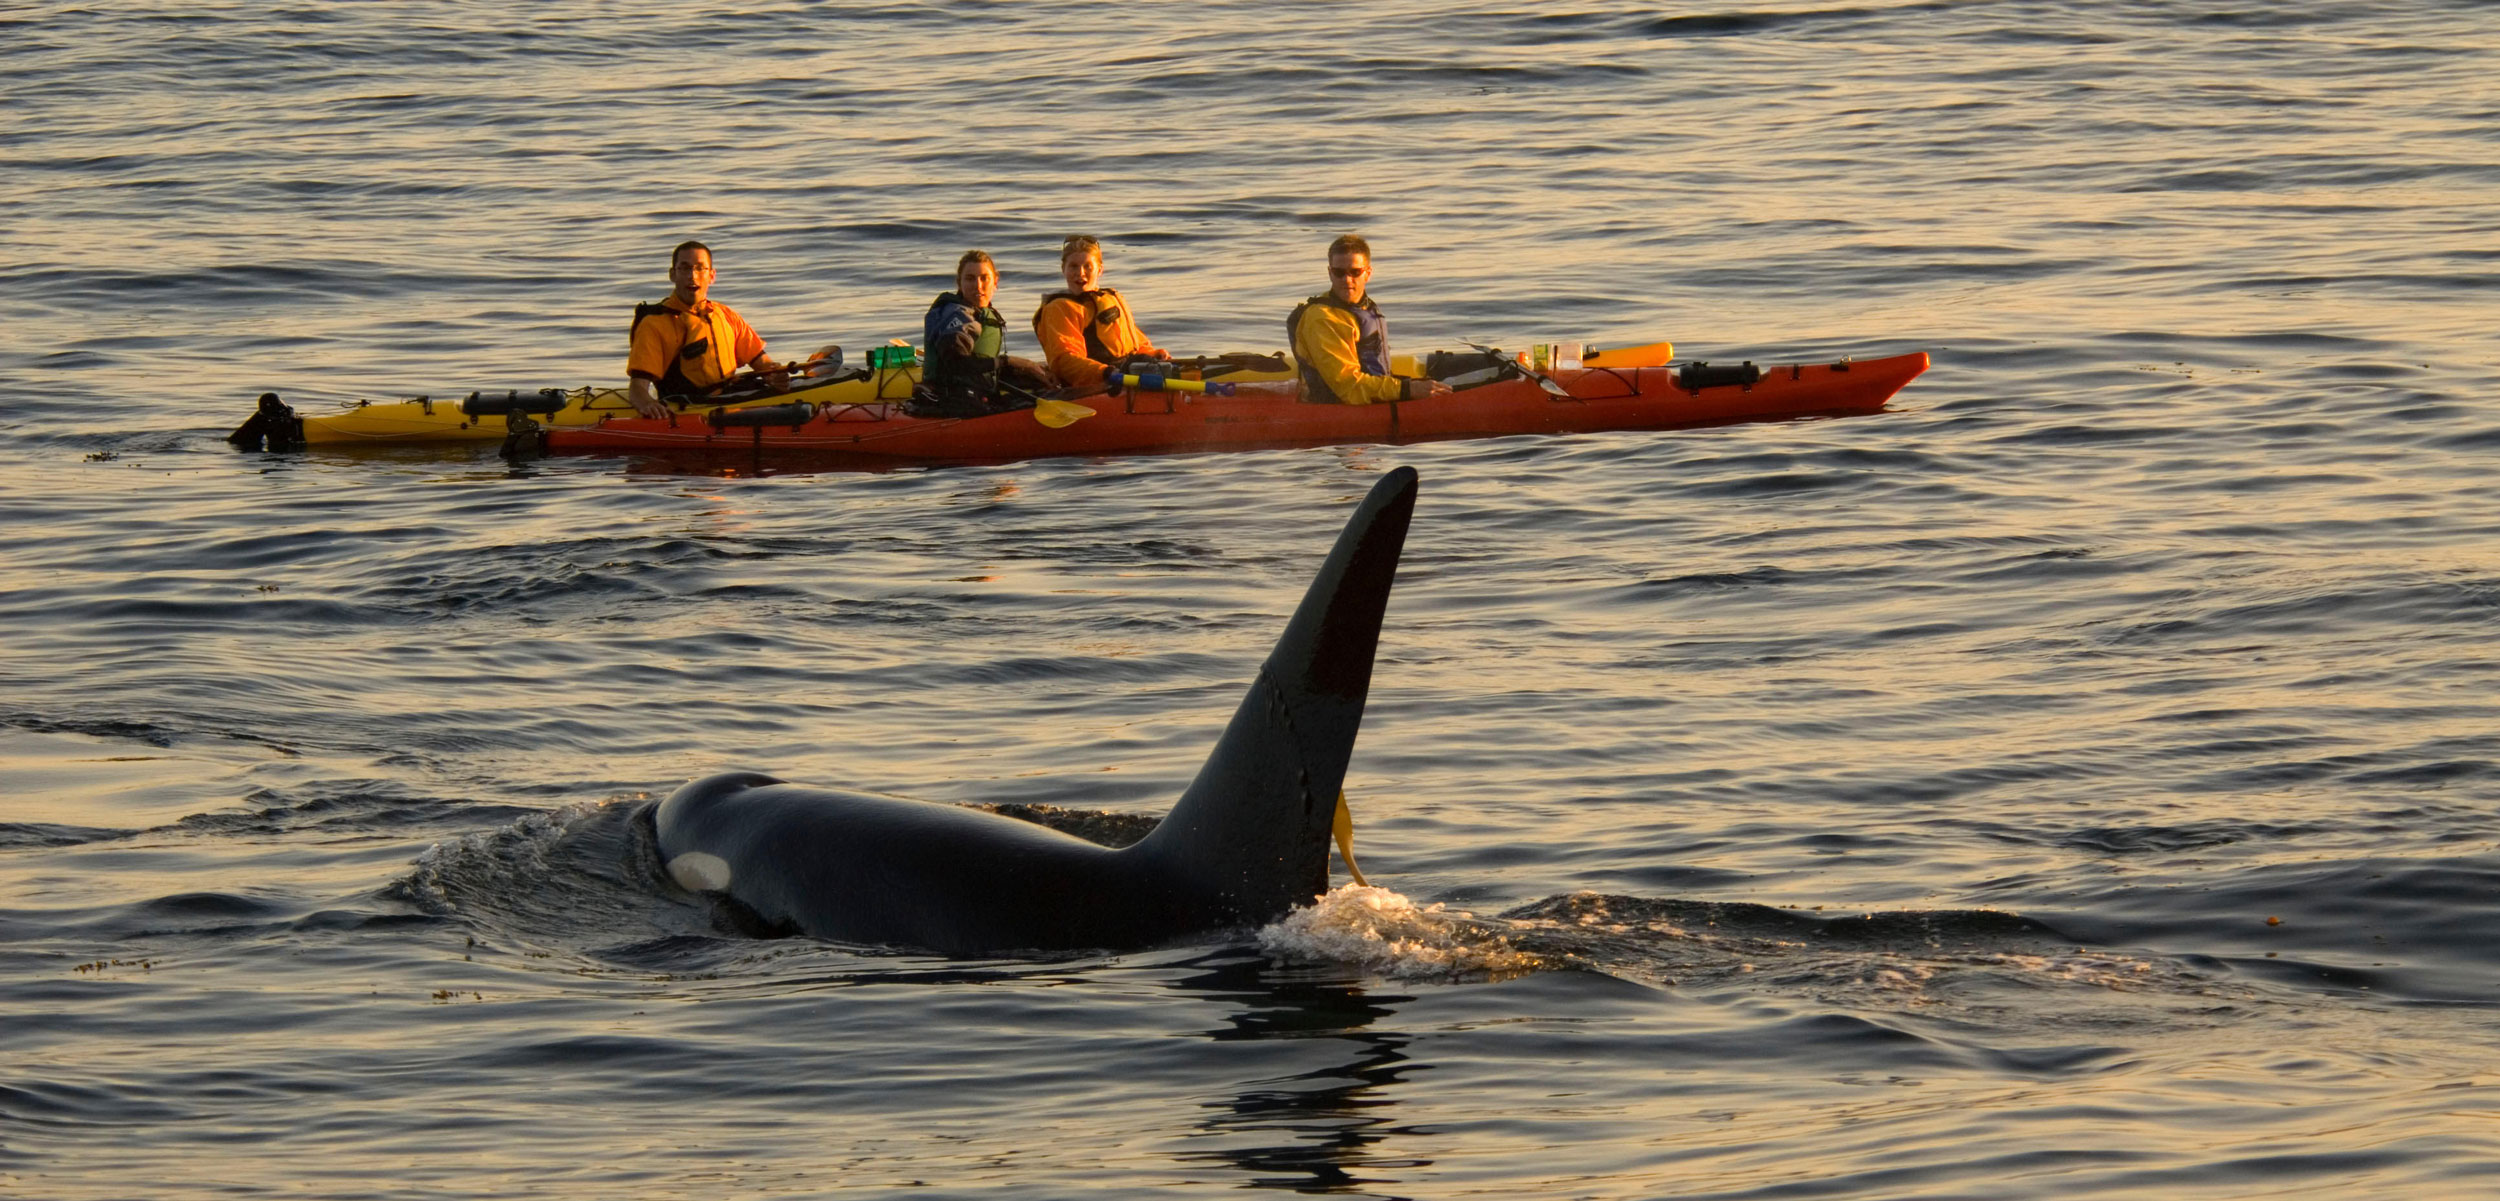 A killer whale surfacing near kayakers in the Salish Sea